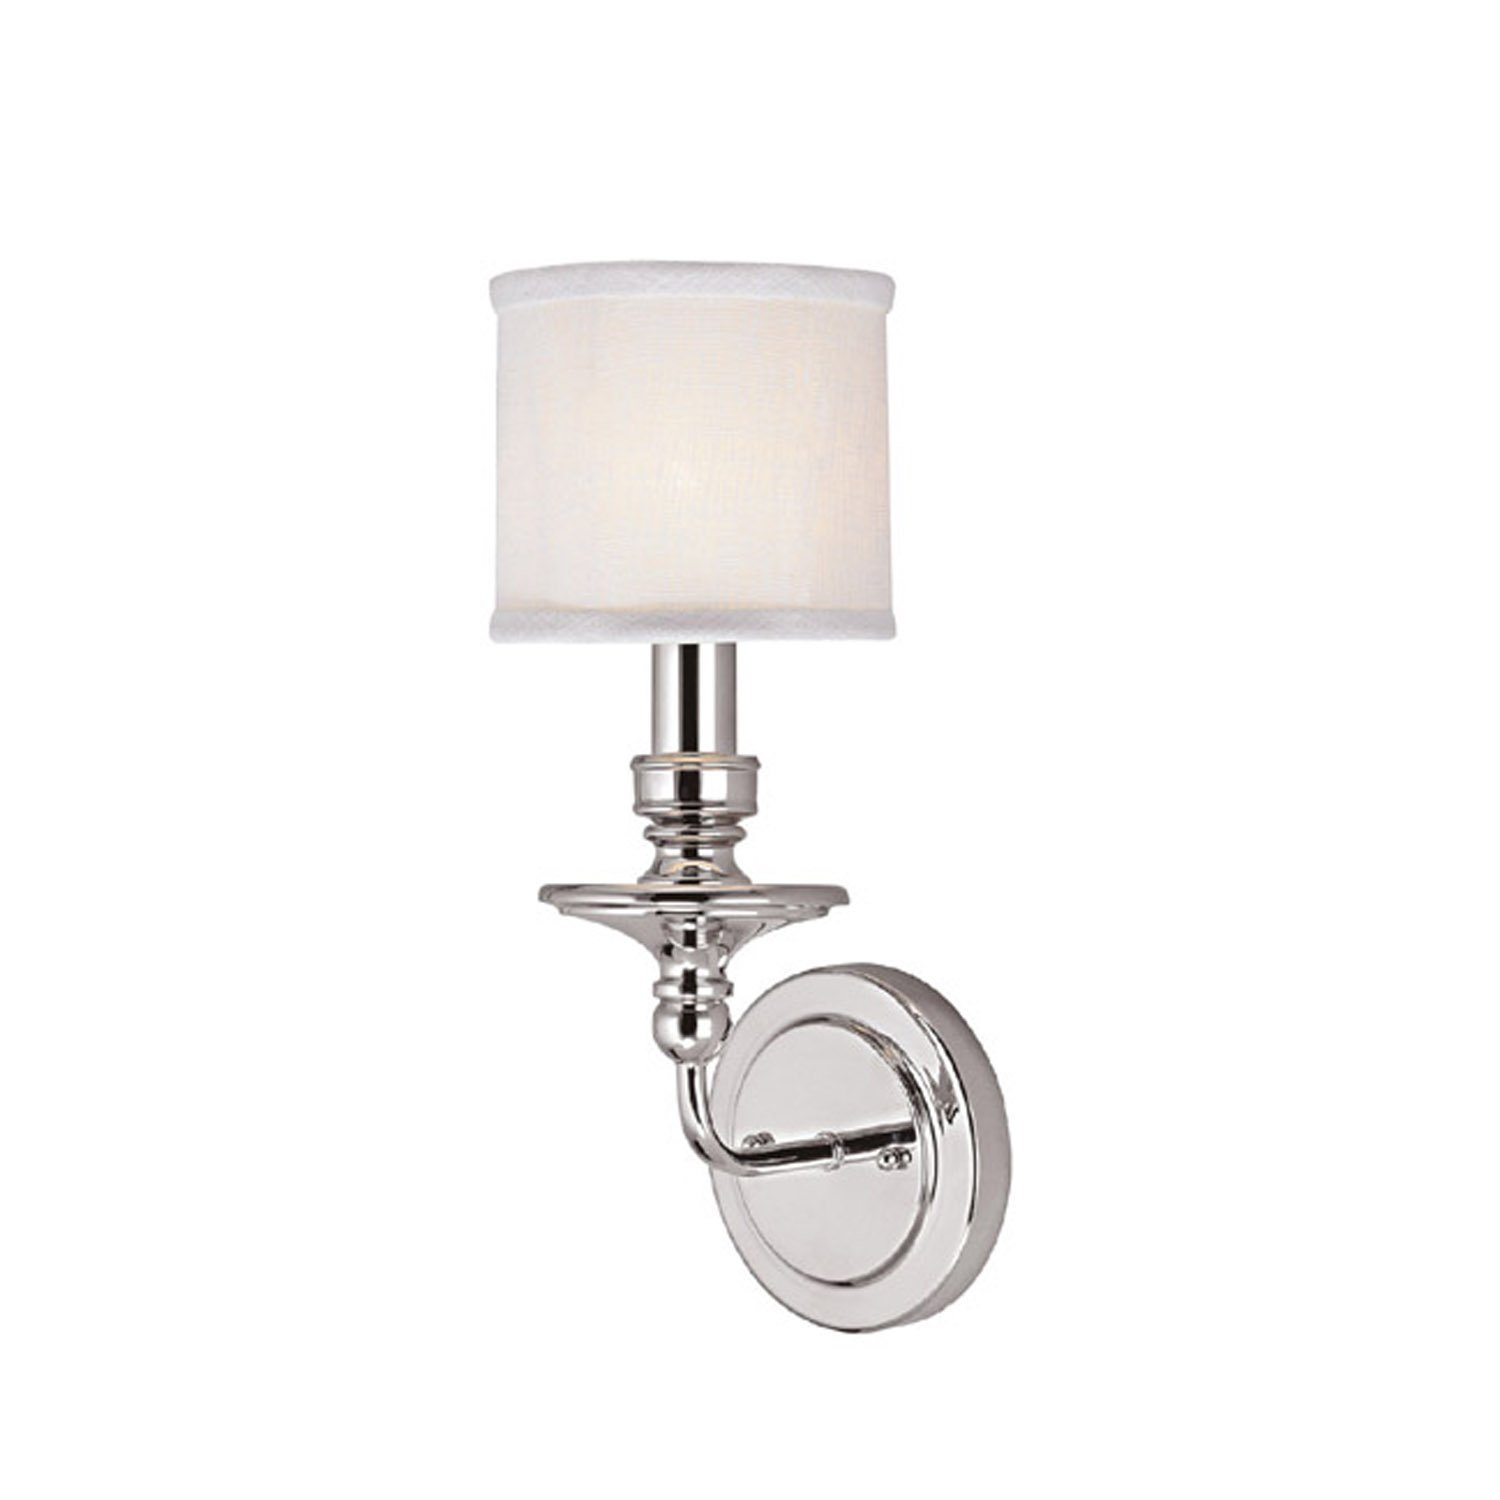 xenon info yorokobaseya polished bath loading sconces wall bathroom nickel zoom sconce valley lighting light